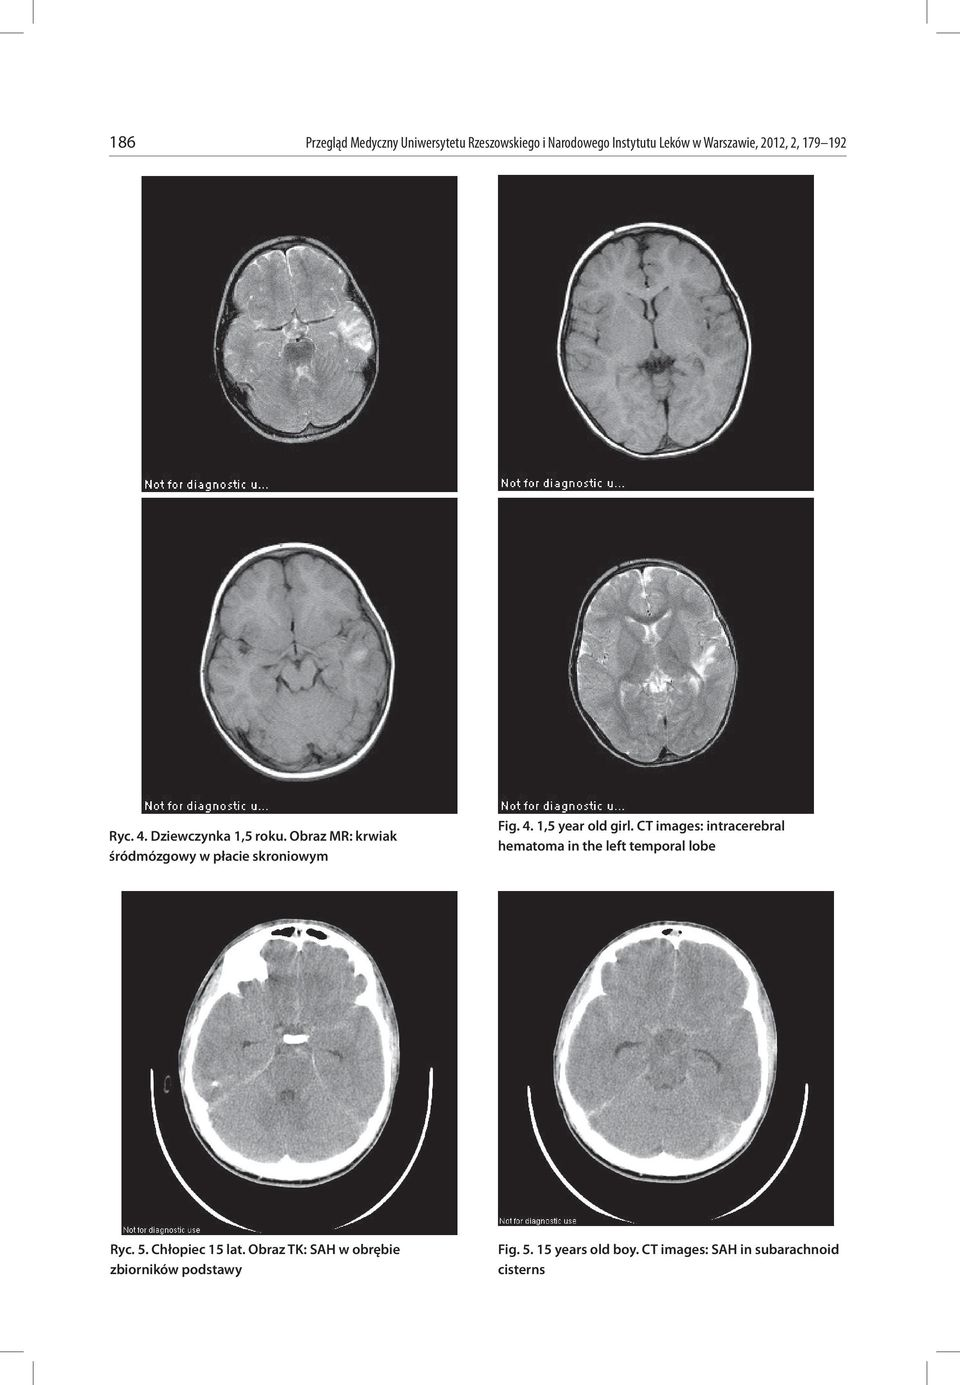 CT images: intracerebral hematoma in the left temporal lobe Ryc. 5. Chłopiec 15 lat.